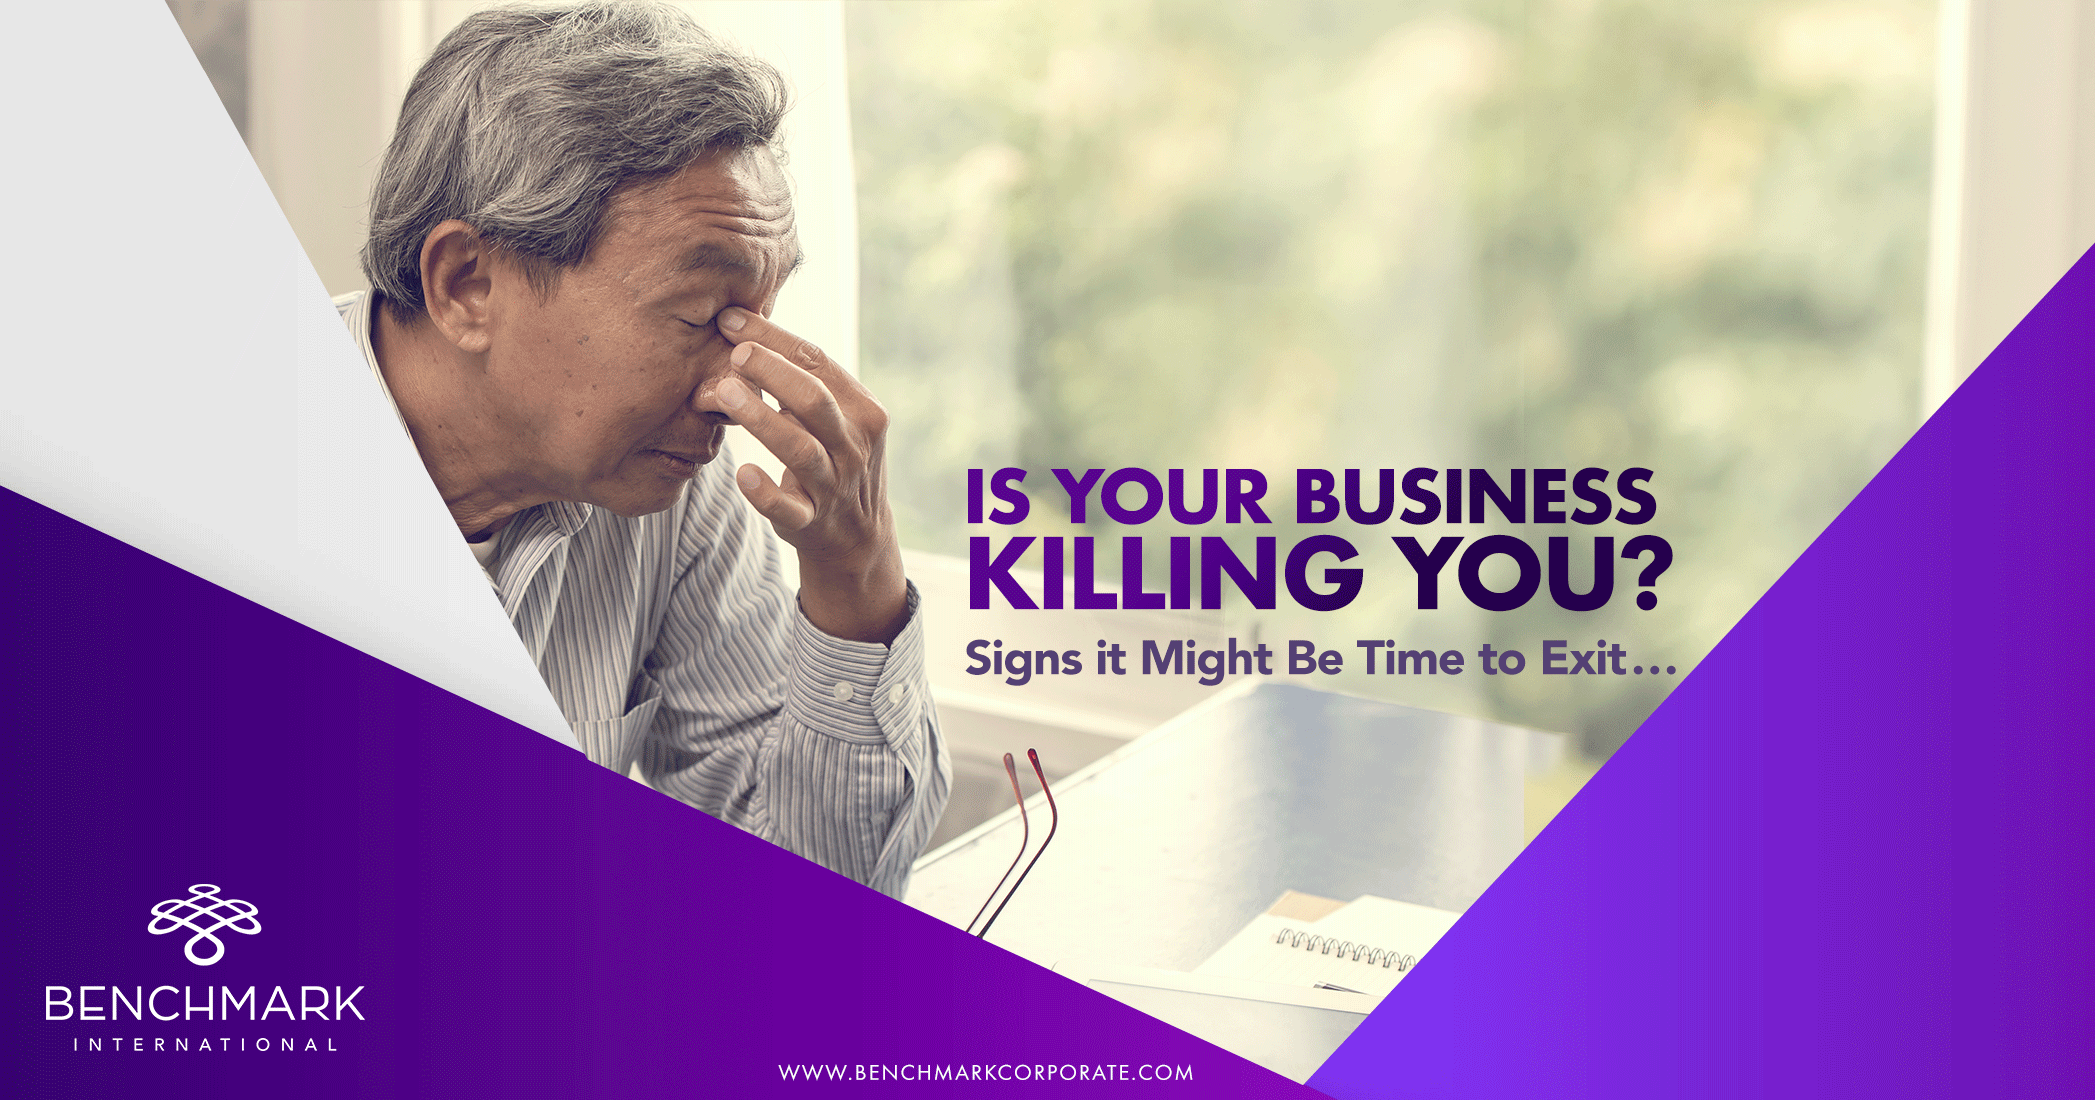 Is Your Business Killing You? Signs it Might Be Time to Exit …